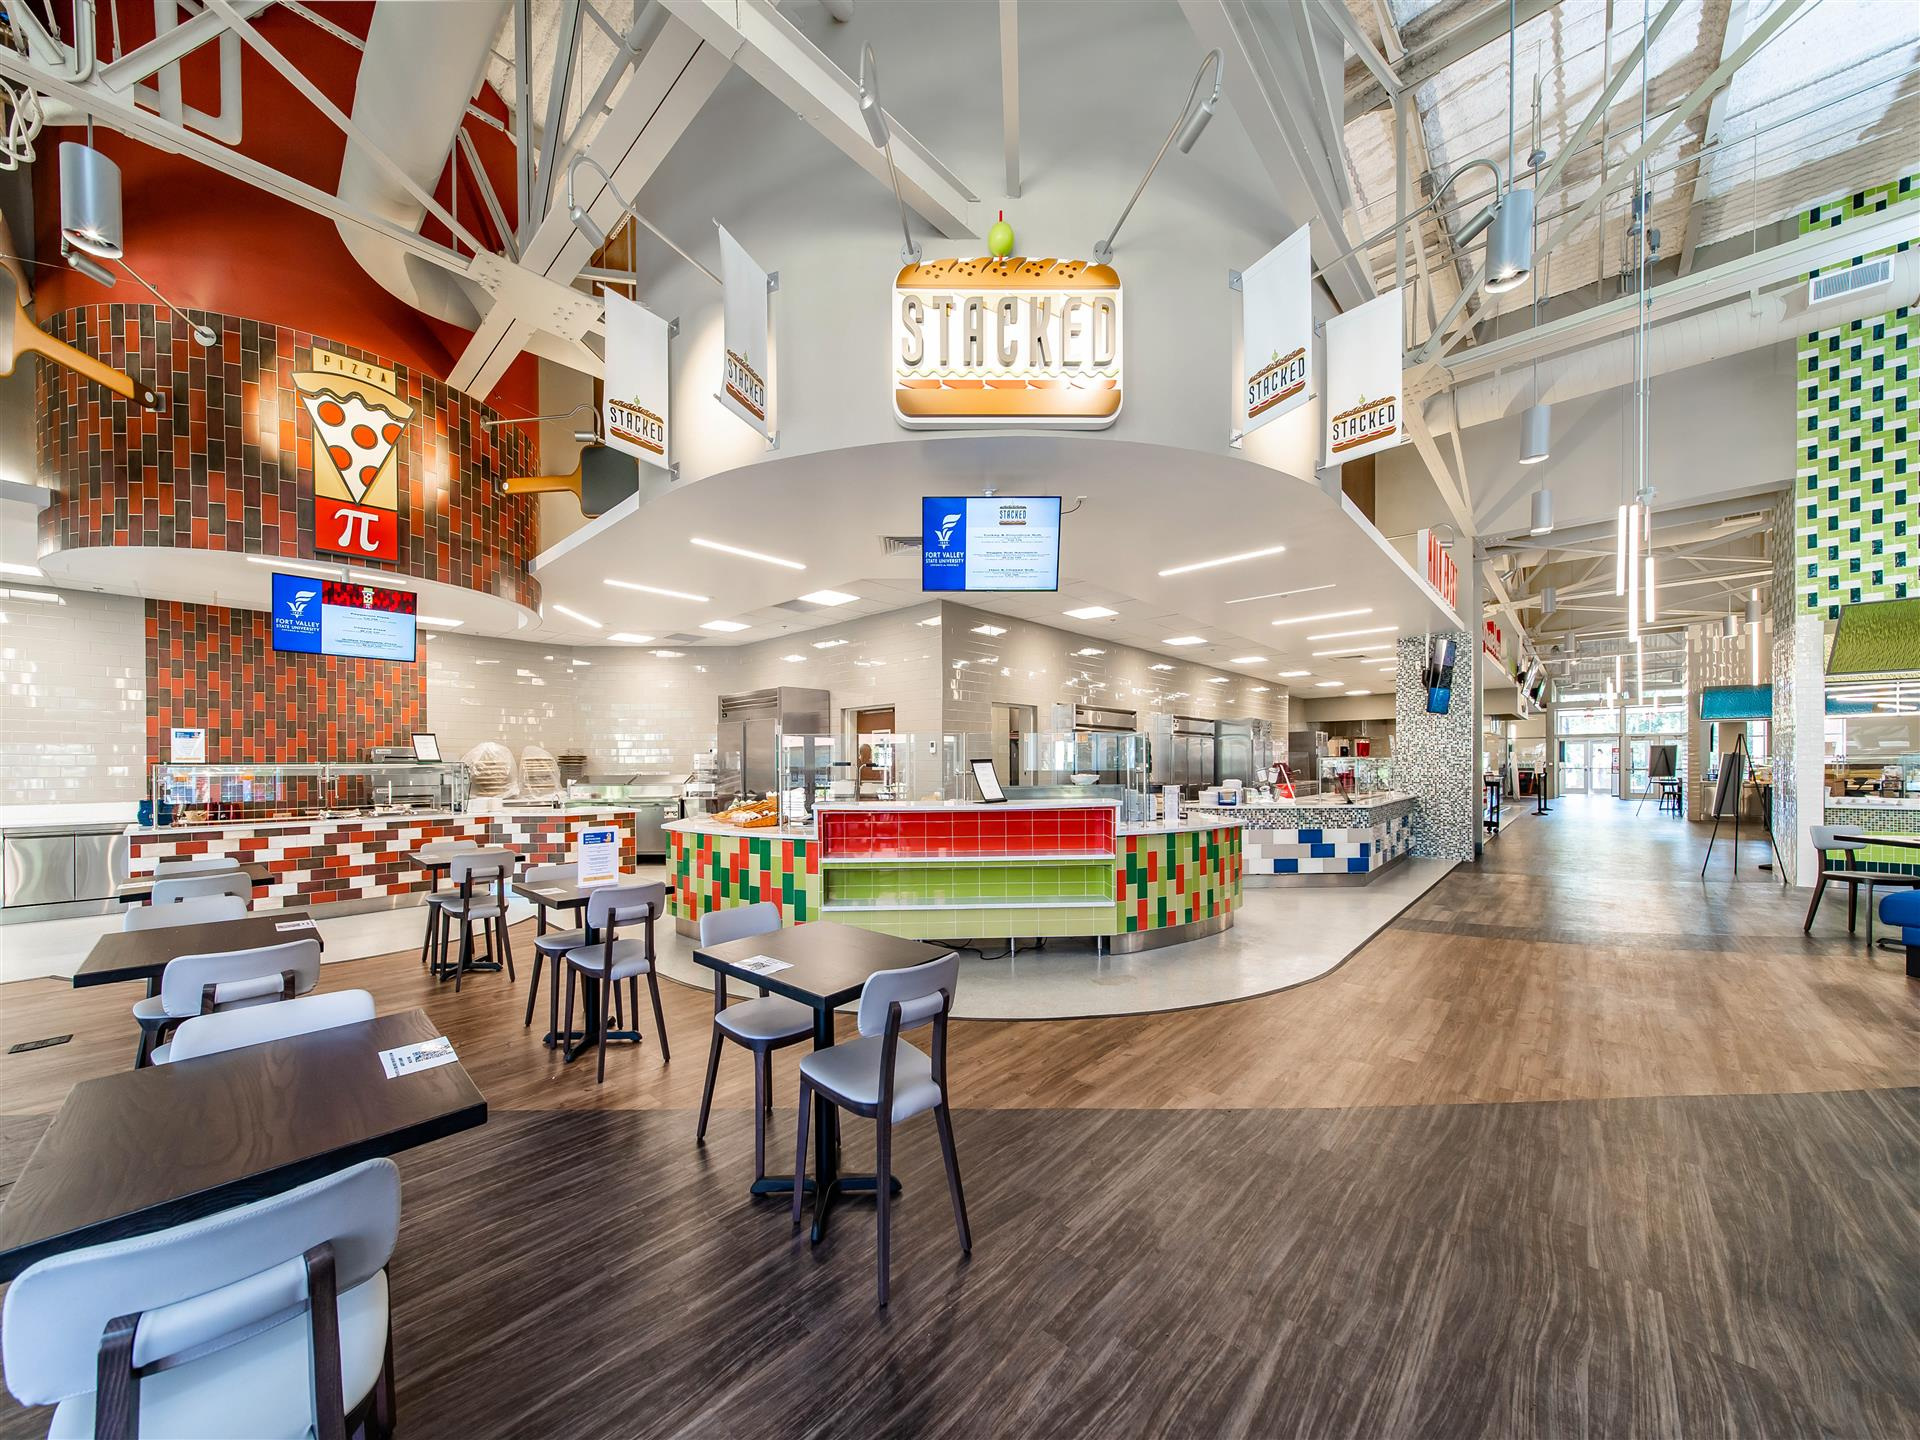 Student Dining - higher education - open space with various eateries and seating